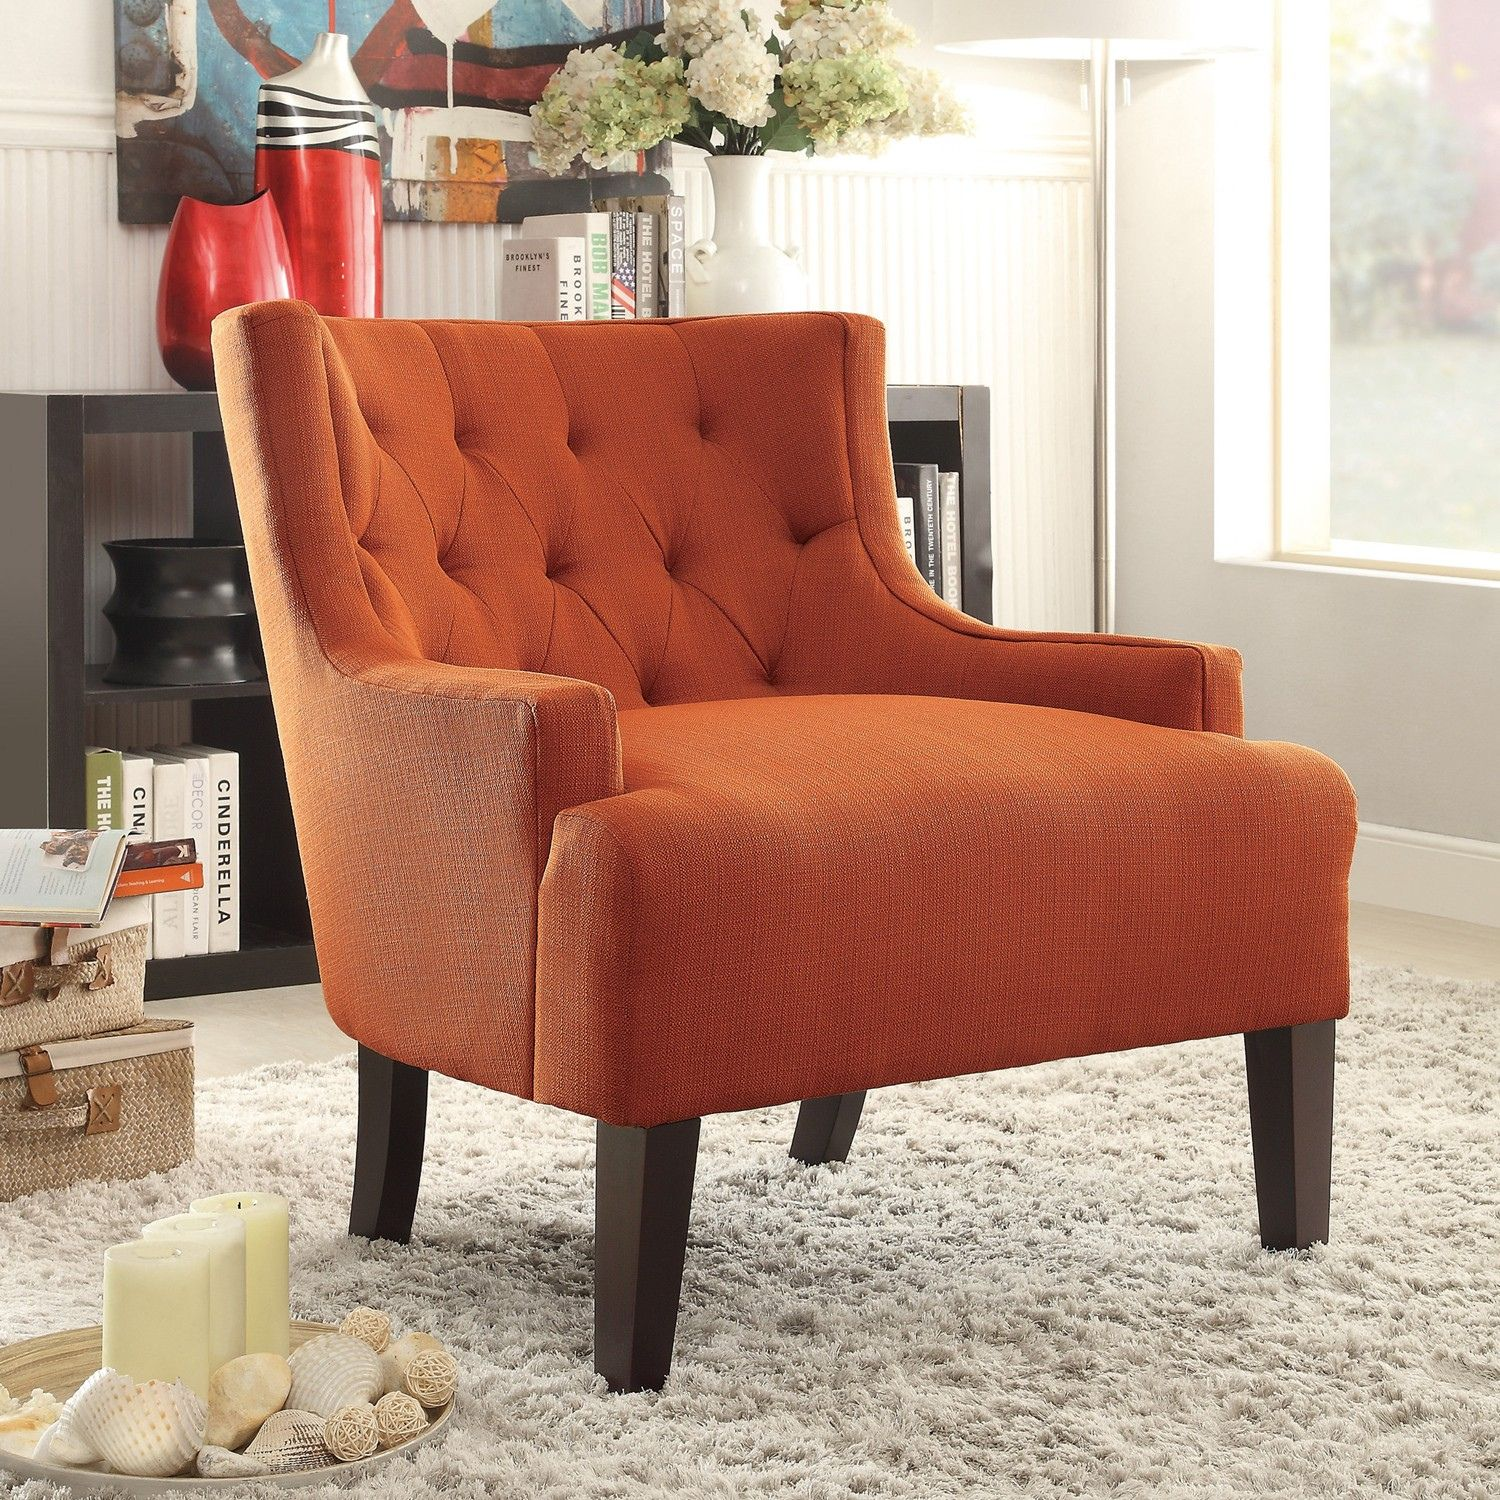 99 Burnt Orange Accent Chairs Best Bedroom Furniture Check More